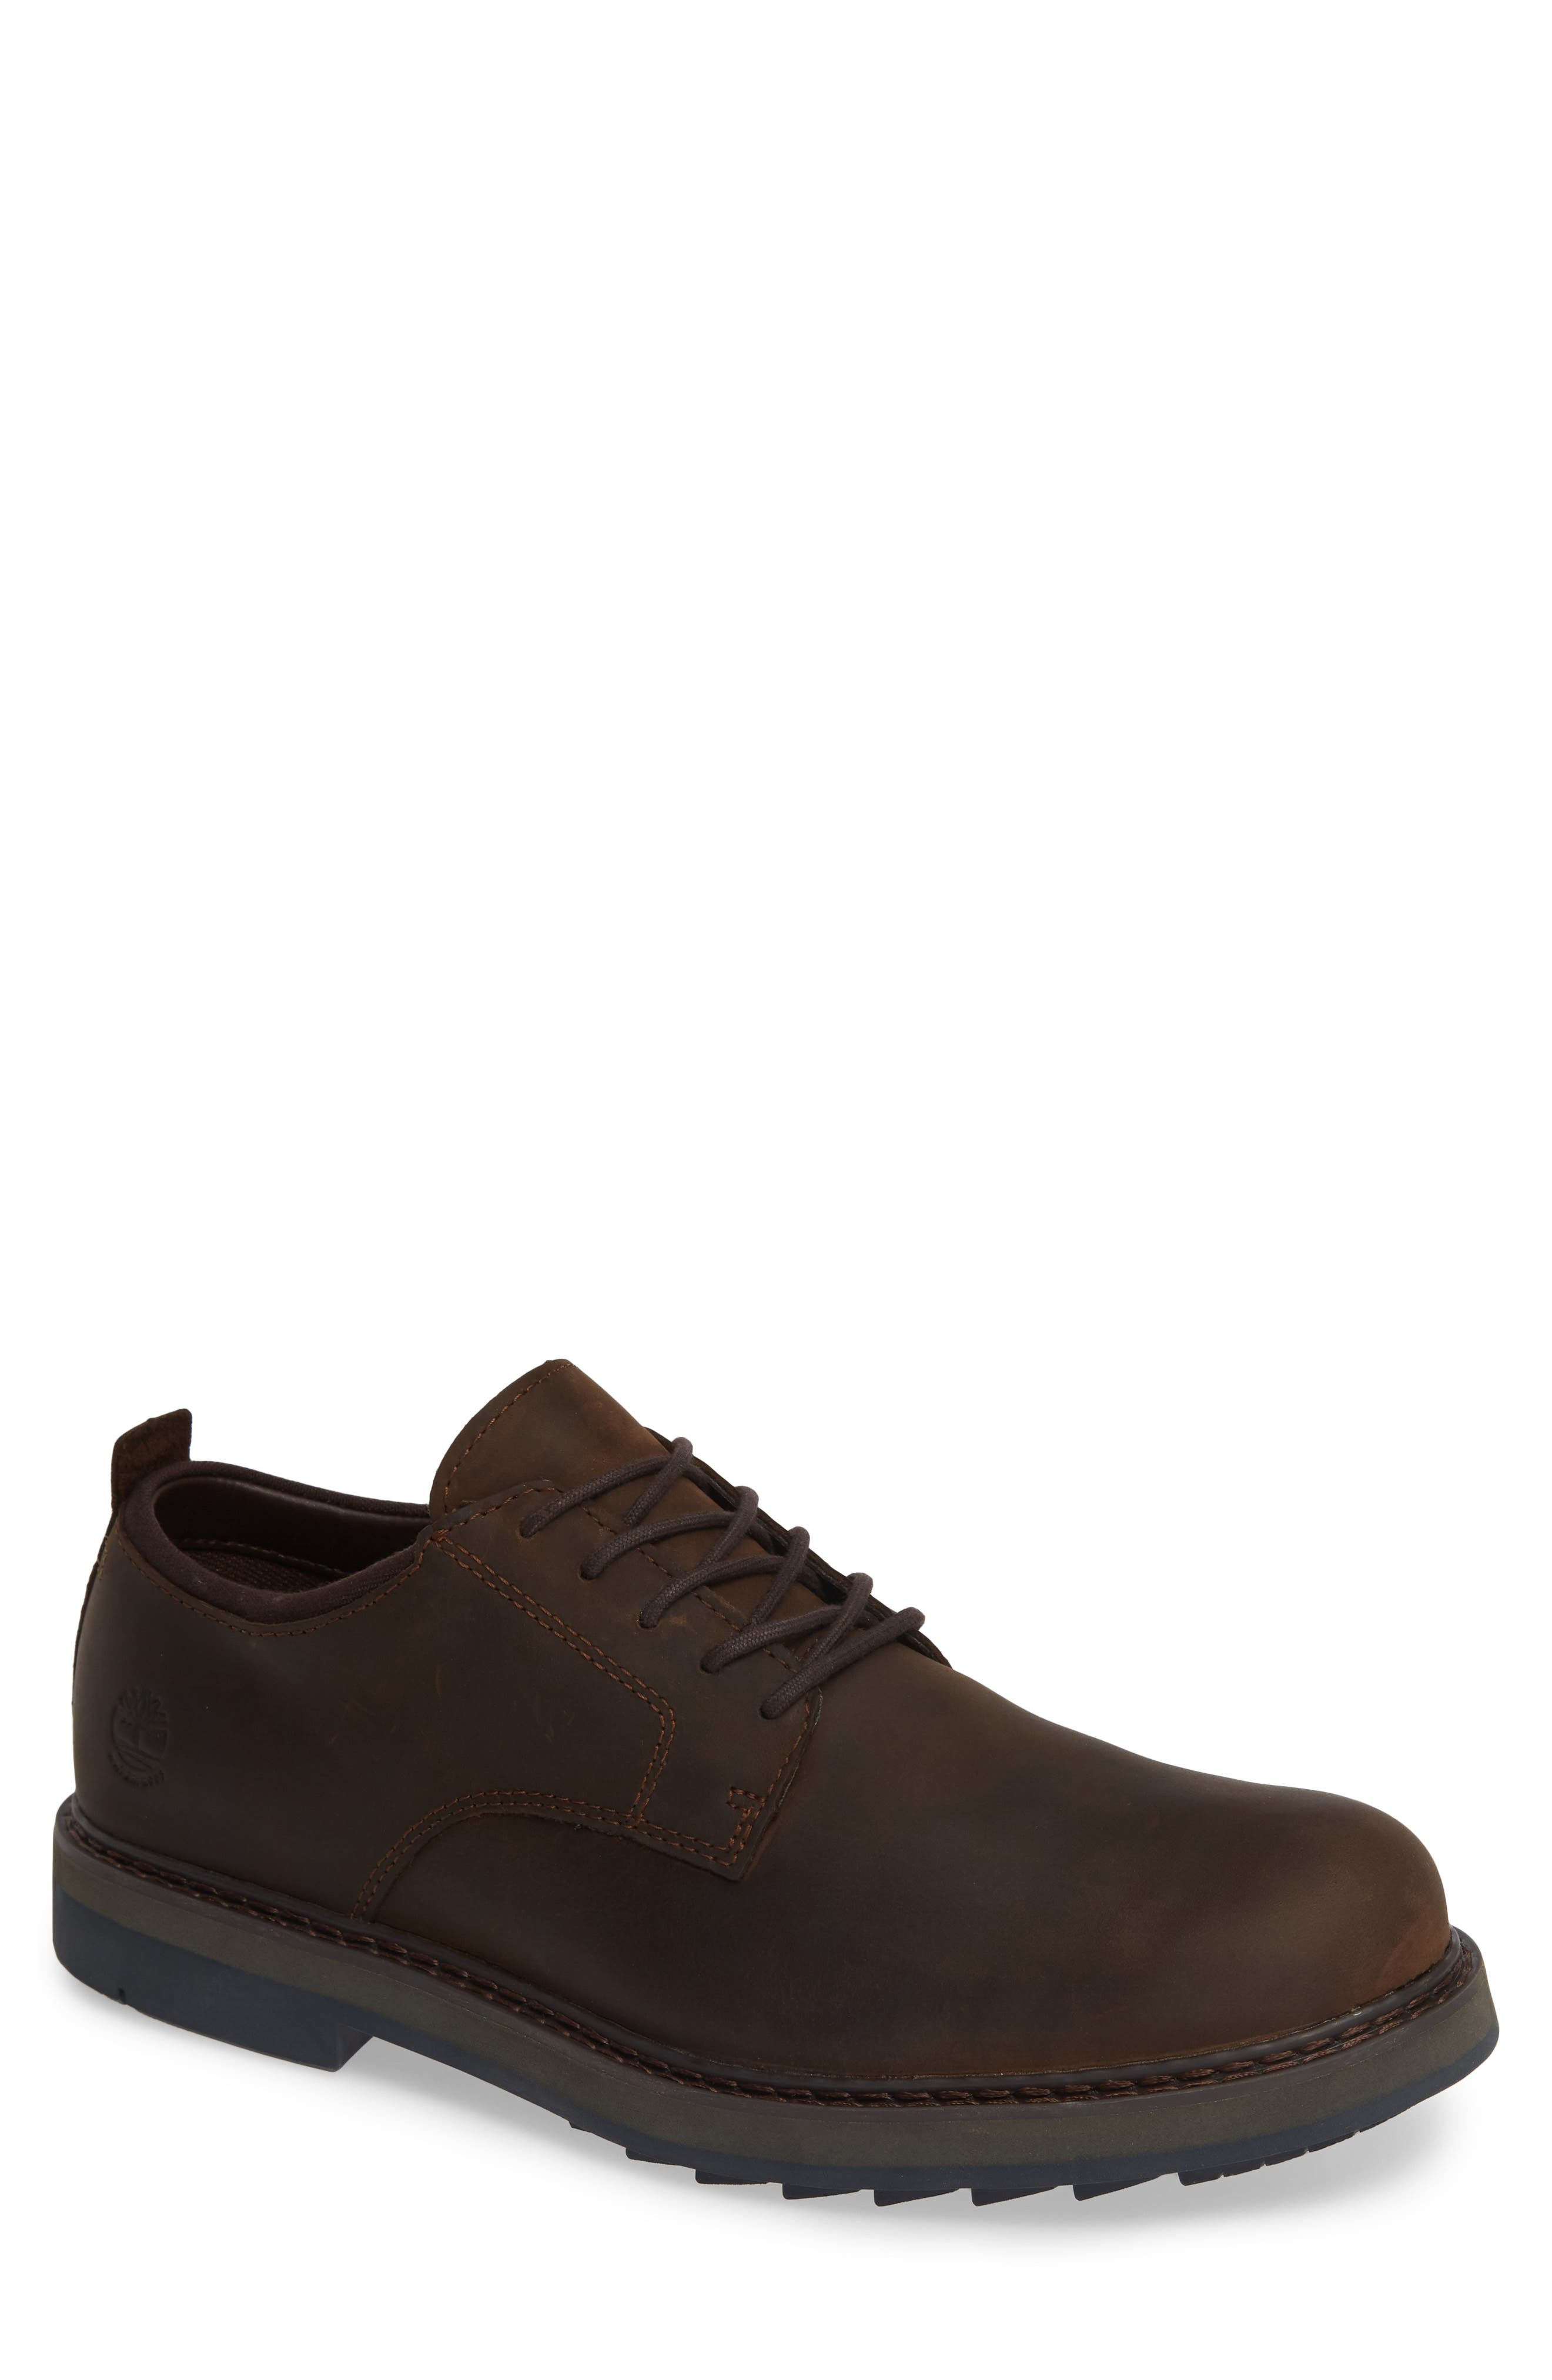 Squall Canyon Waterproof Plain Toe Derby,                             Main thumbnail 1, color,                             BROWN LEATHER